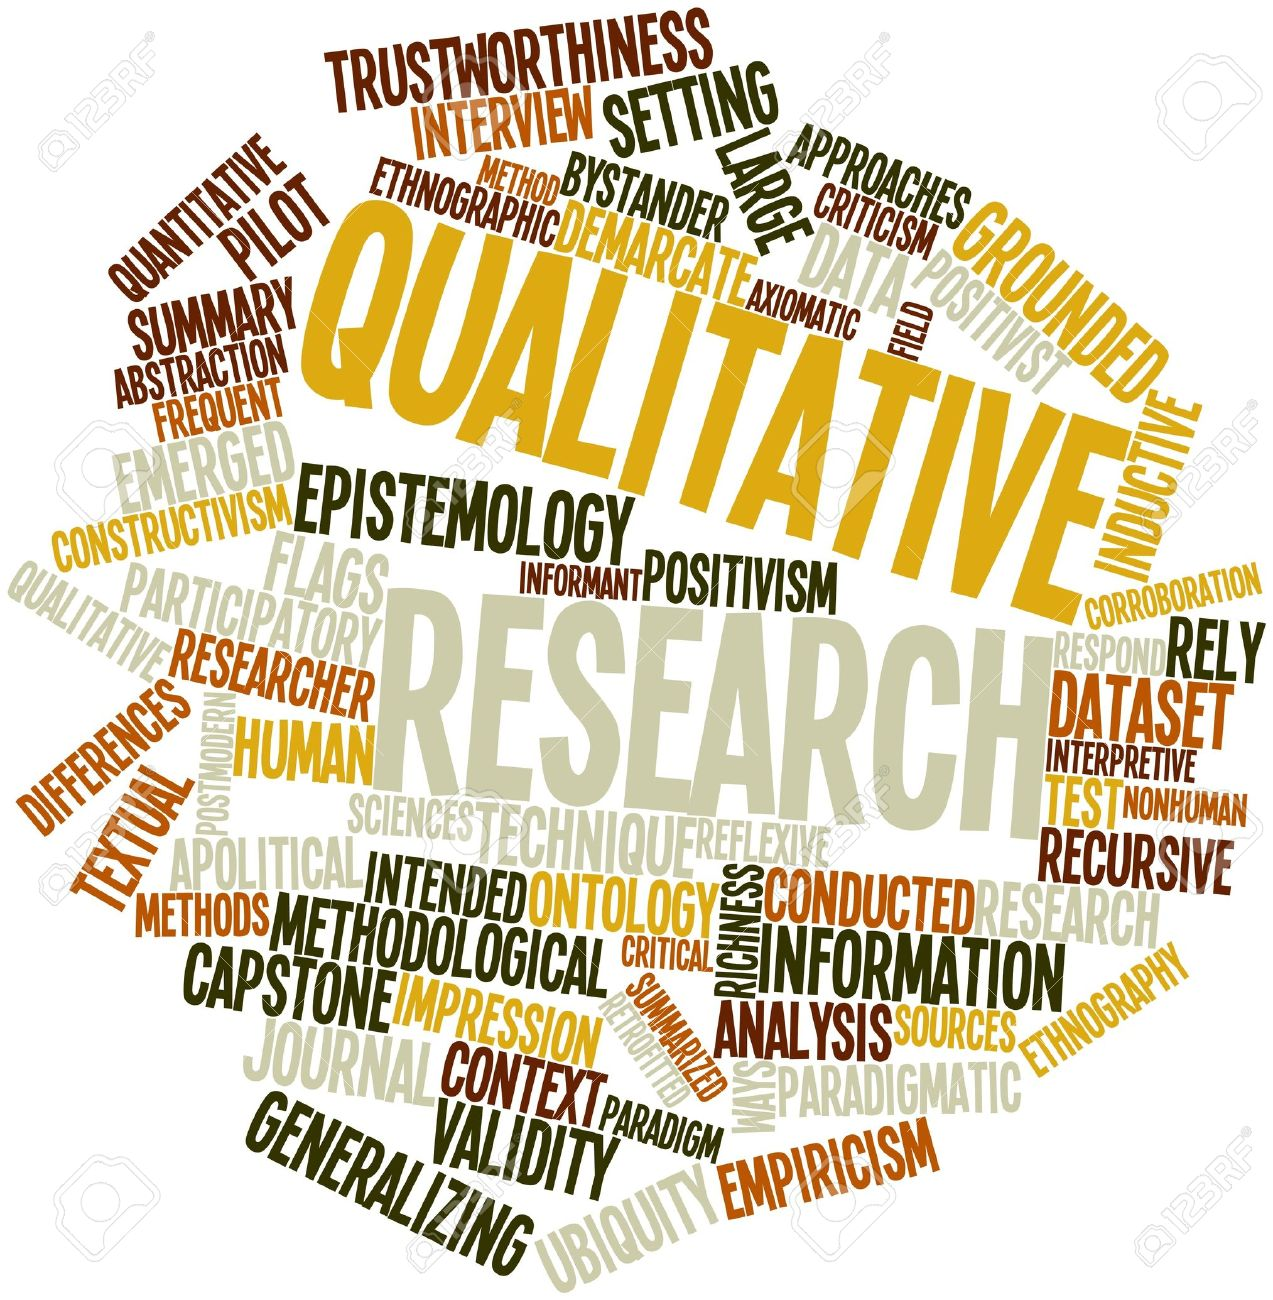 dissertation methodology stock market development relationship I certify that i have read this thesis and have found that it is fully adequate, in  scope and  stock market development economic growth relationship in  emerging  section 3 describes the data, and the methodology is presented in  section 4.